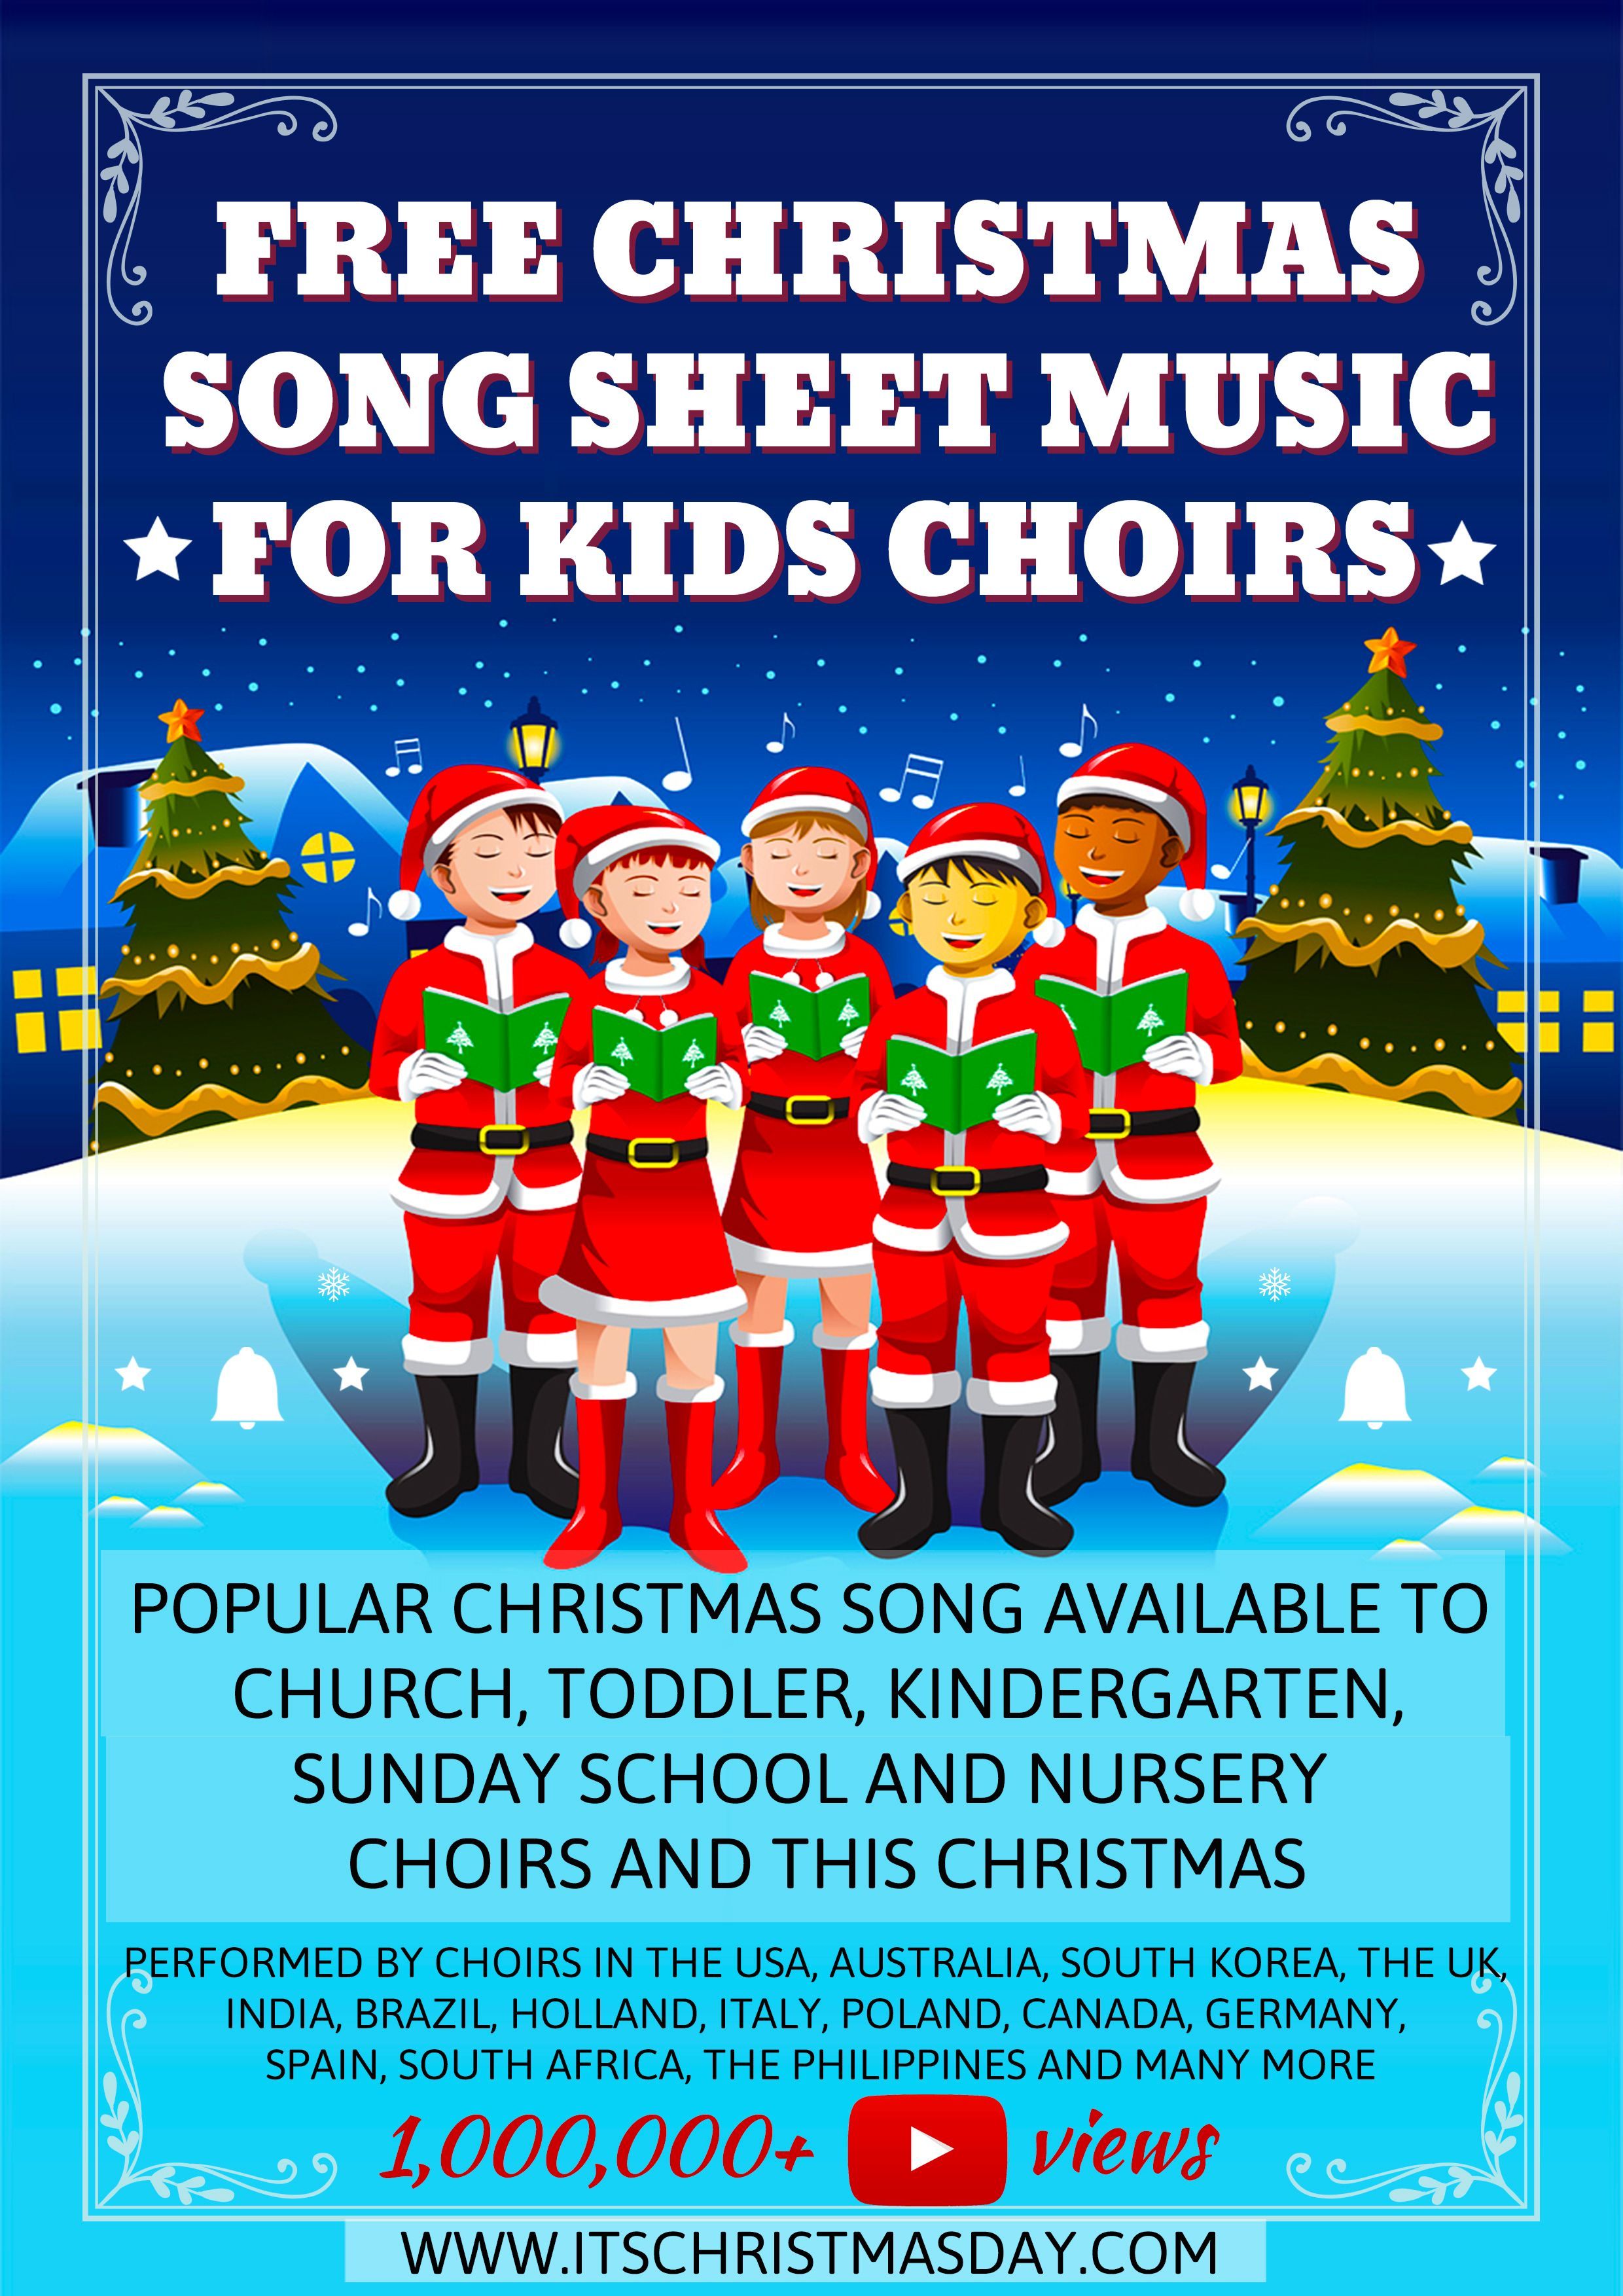 Free Christmas song sheet music and Mp3's for all kids